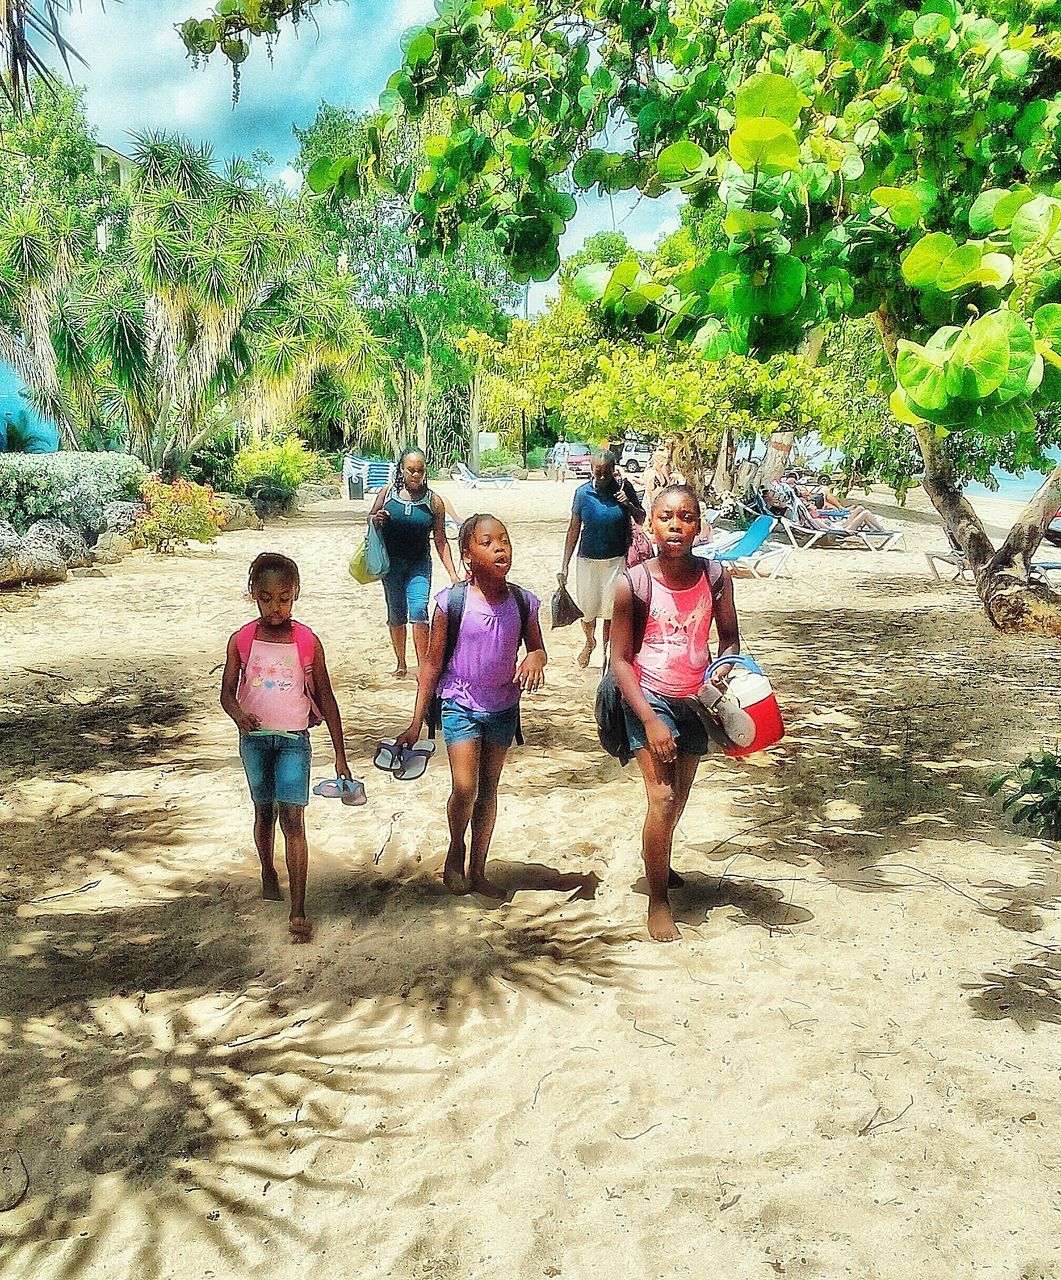 real people, sand, tree, boys, childhood, elementary age, leisure activity, day, girls, full length, fun, lifestyles, outdoors, playing, enjoyment, nature, togetherness, growth, beach, happiness, friendship, beauty in nature, sky, young adult, people